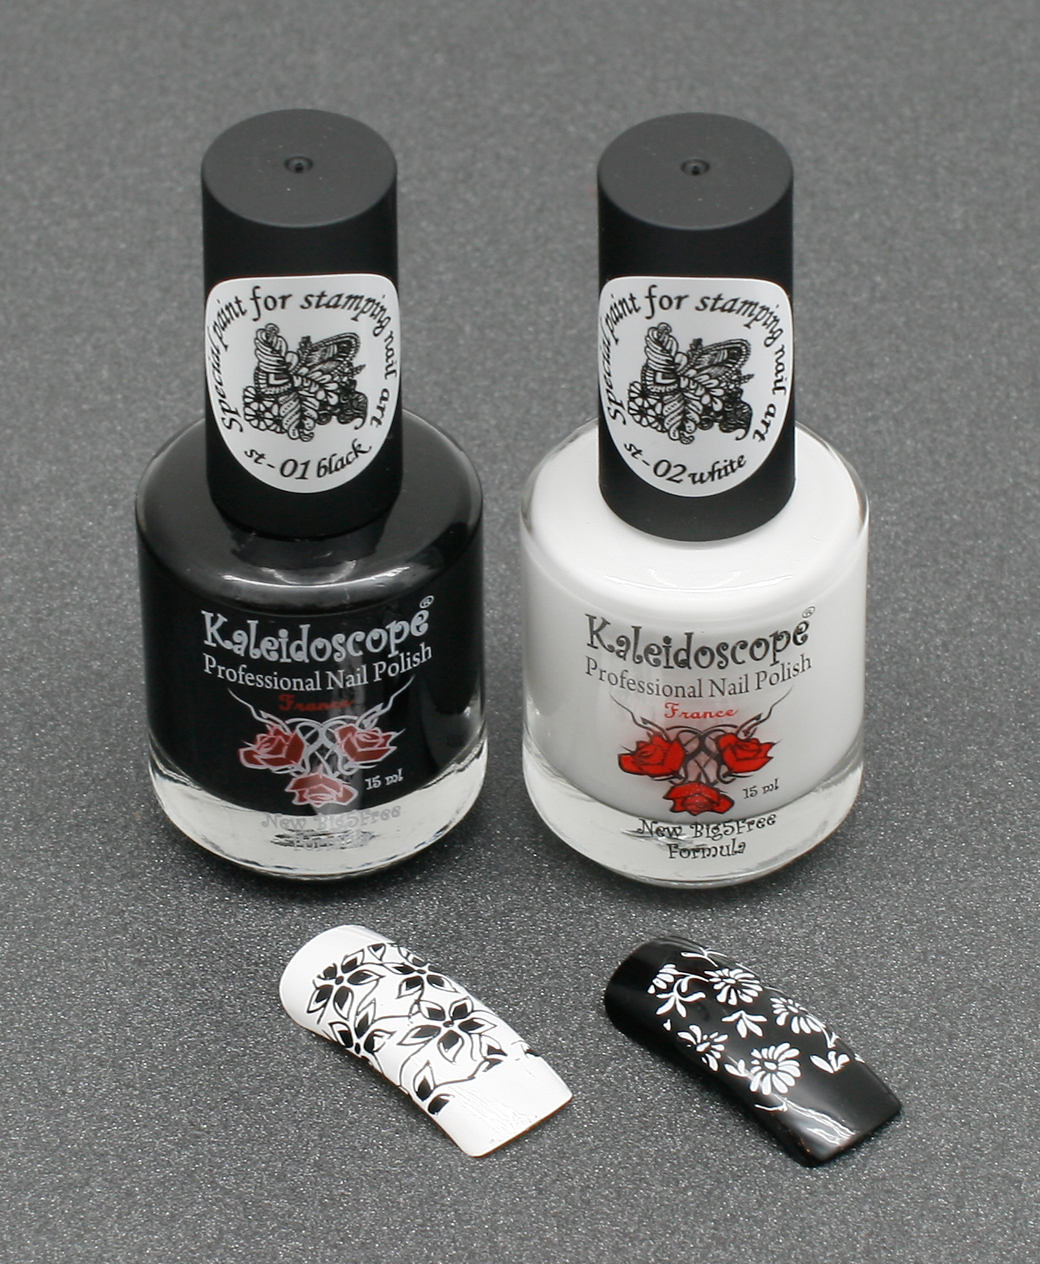 EL Corazon Kaleidoscope Special paint for stamping nail art st-01 black (черный) st-02 white (белый), краска для стемпинга, Эль коразон краска для стемпинга